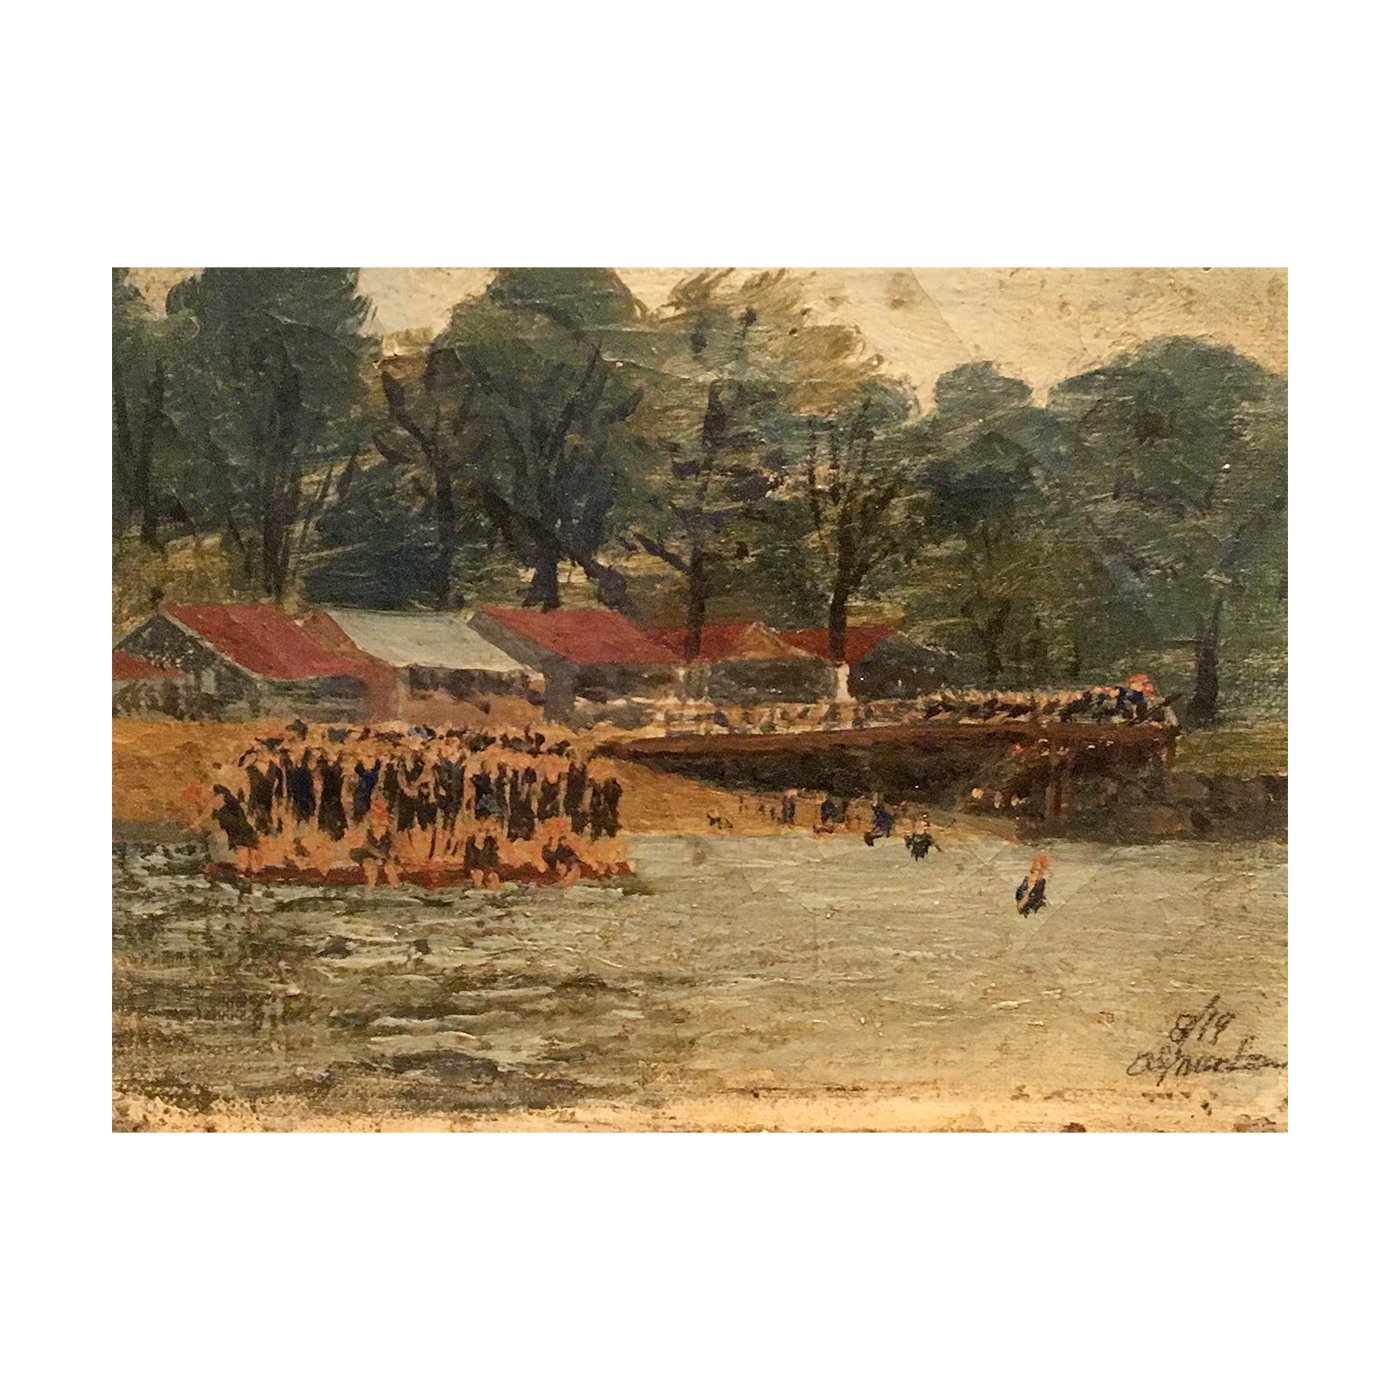 American school folk art : Swimming at camp, circa 1890.